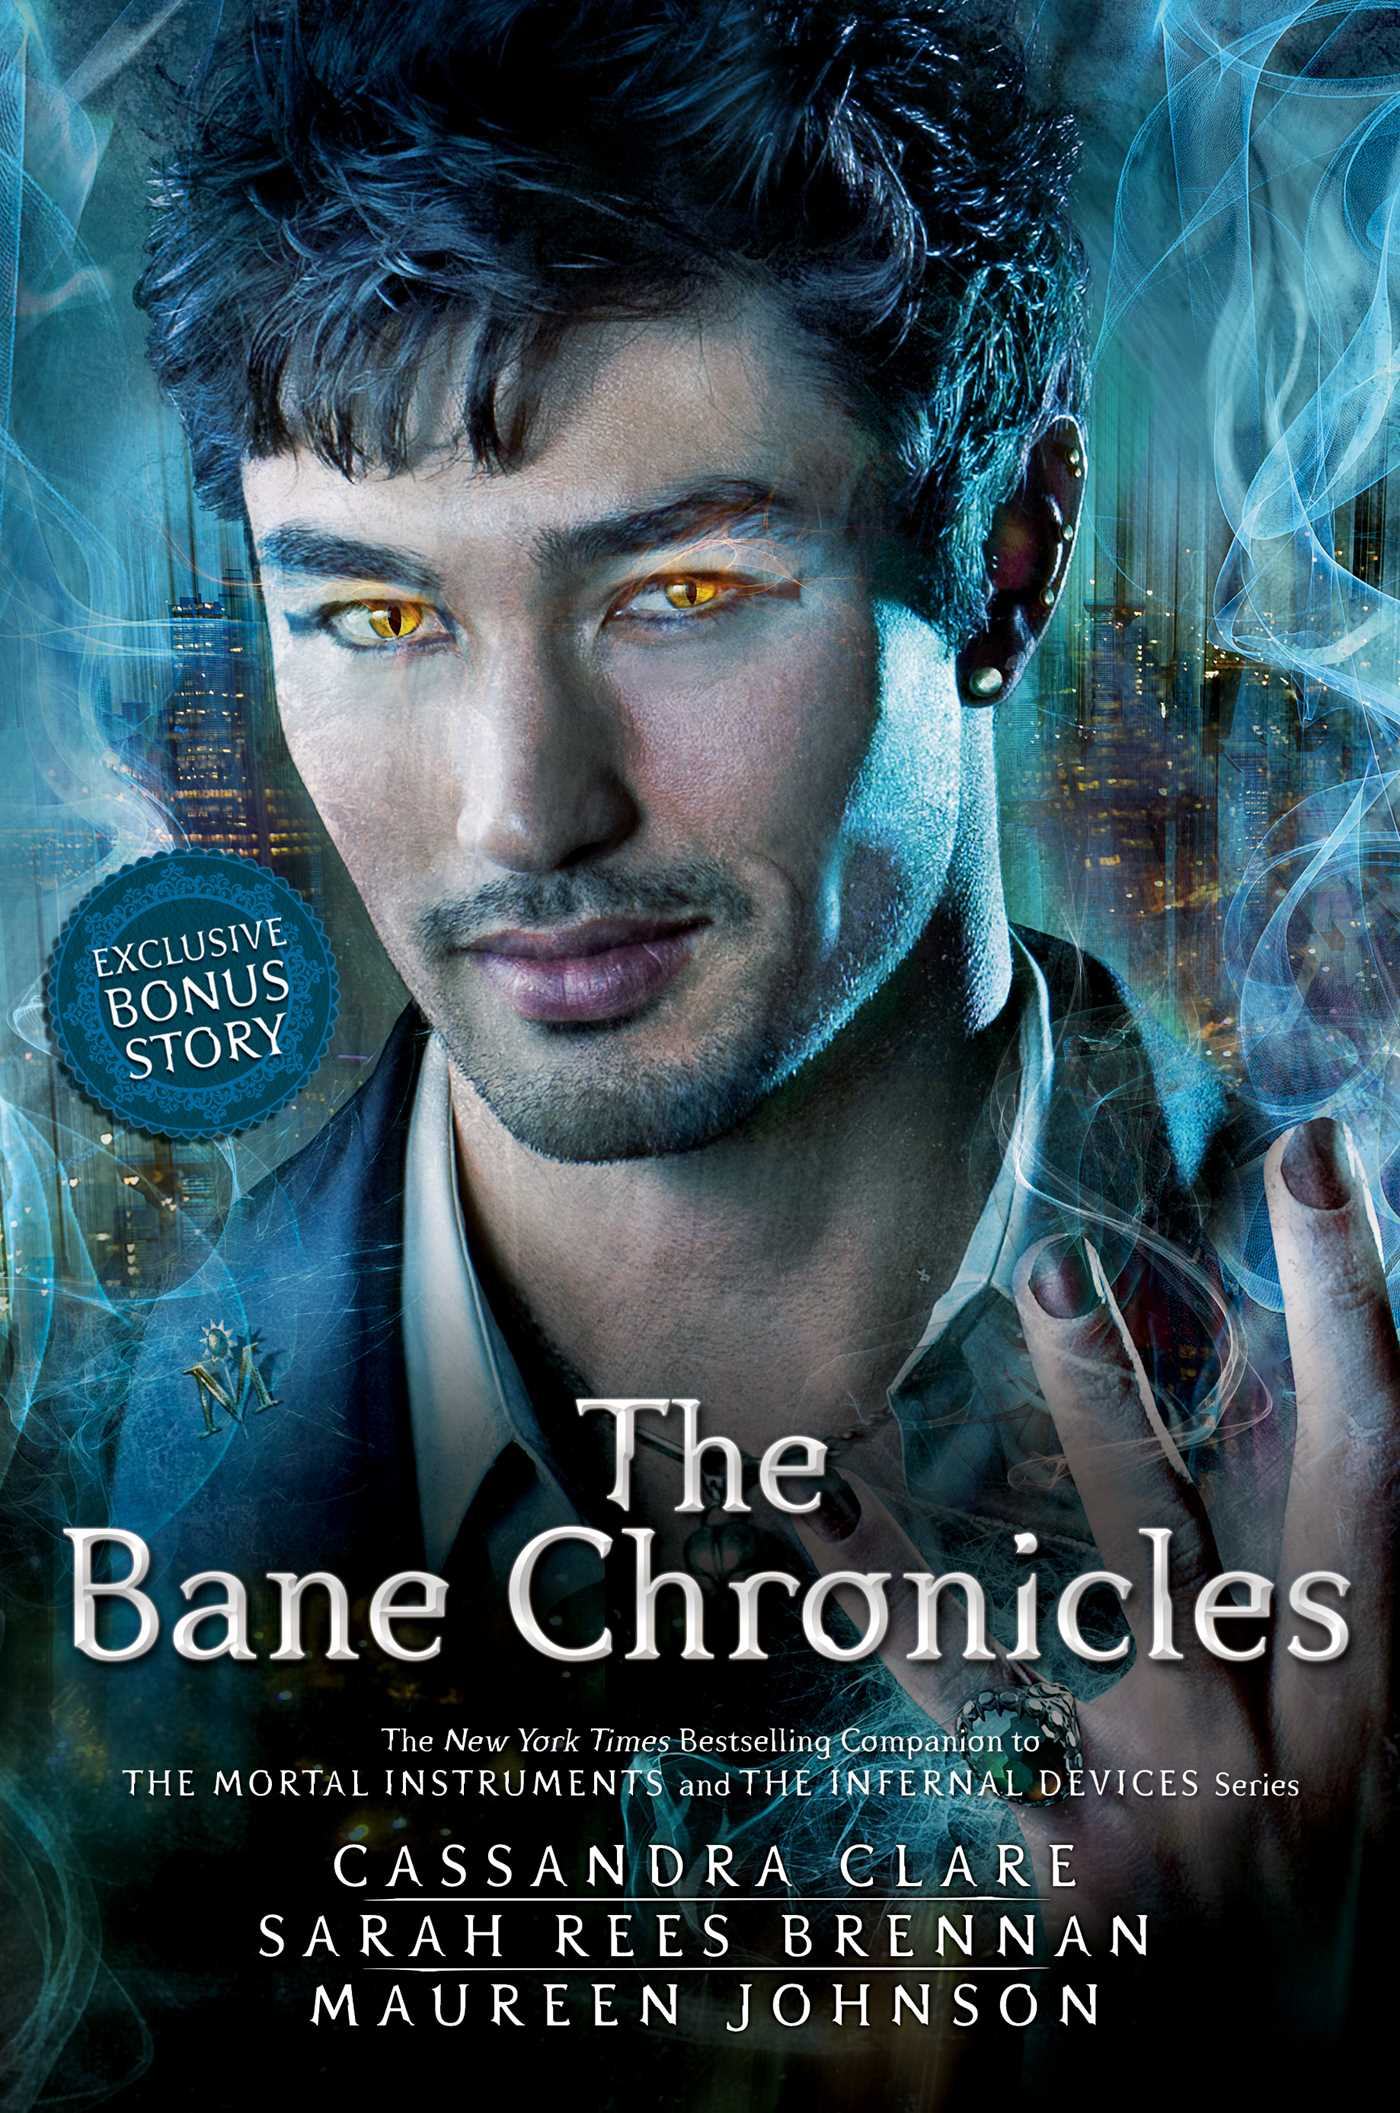 Bane-chronicles-9781442495661_hr